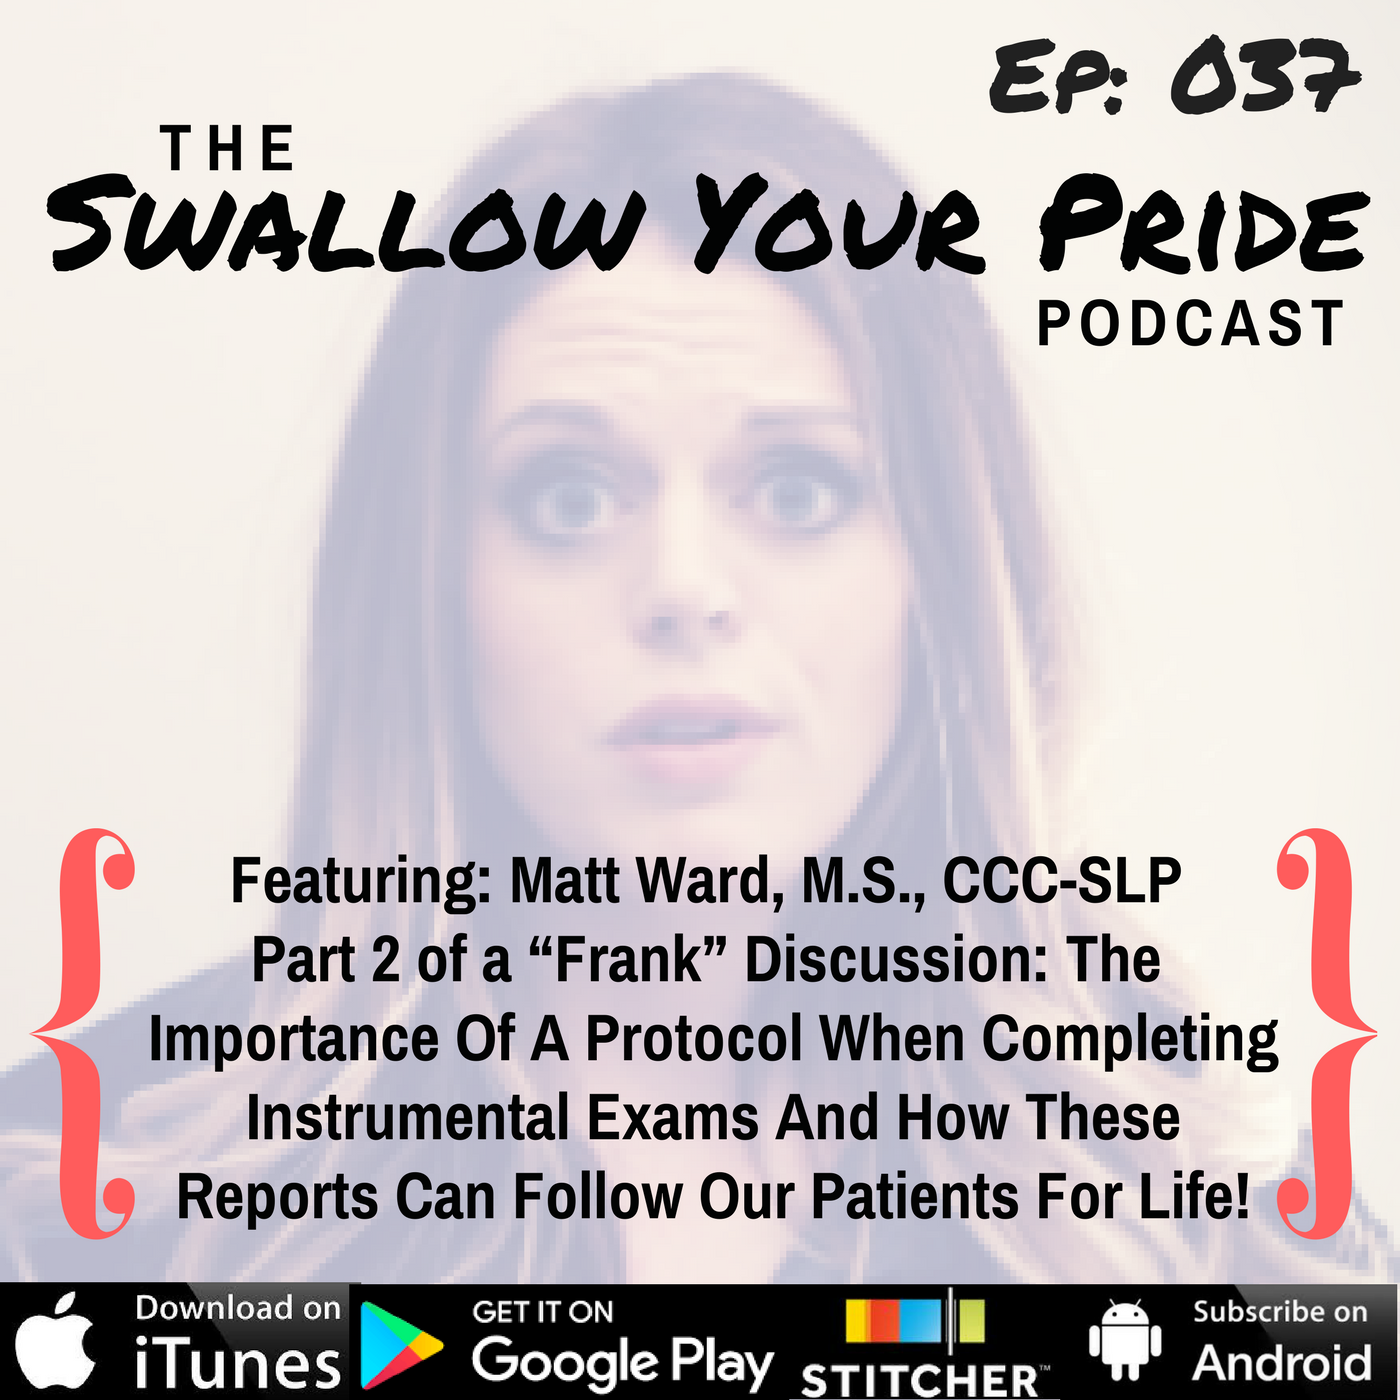 037 – Matt Ward, M.S., CCC-SLP – The Importance Of A Protocol When Completing Instrumental Exams And How These Reports Can Follow Our Patients For Life!